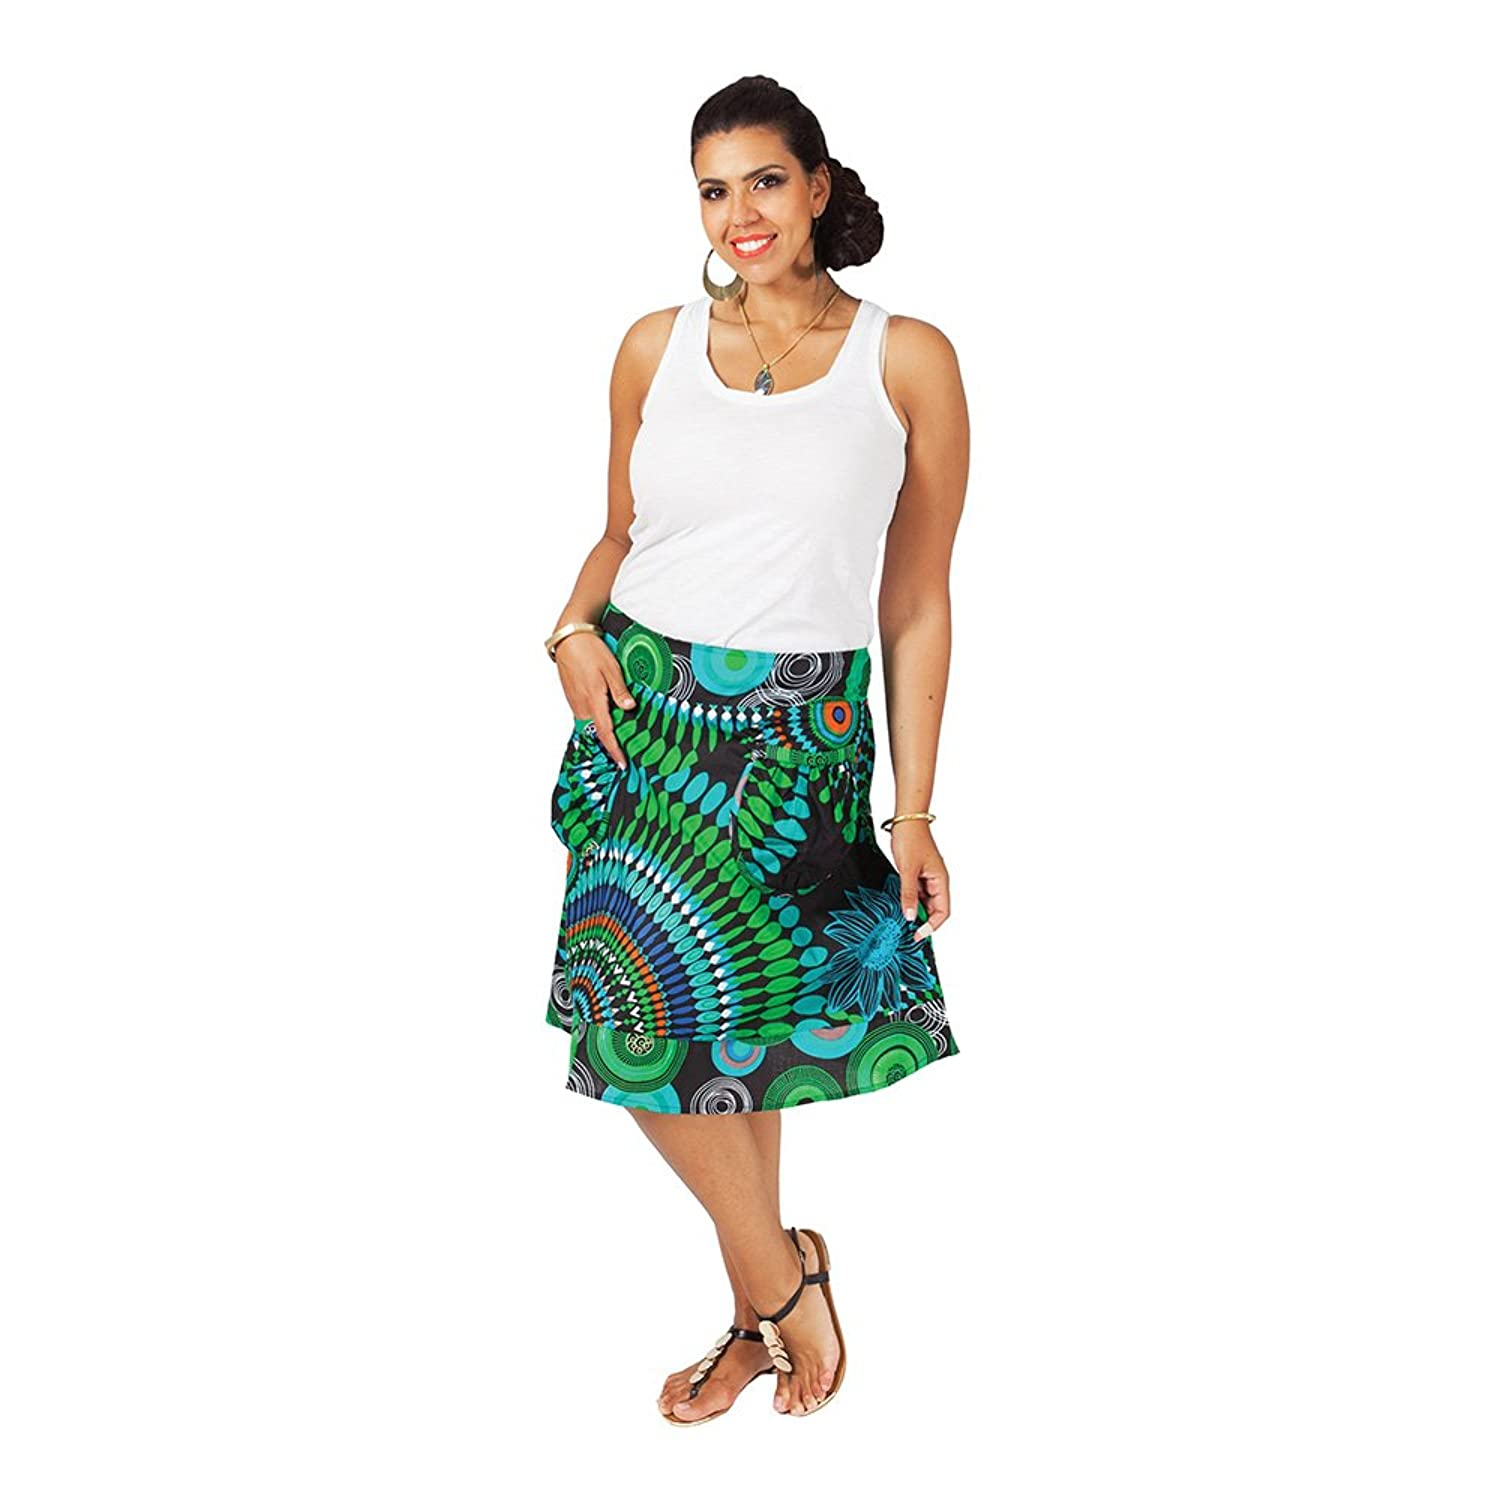 Aller Simplement Women's Skirt